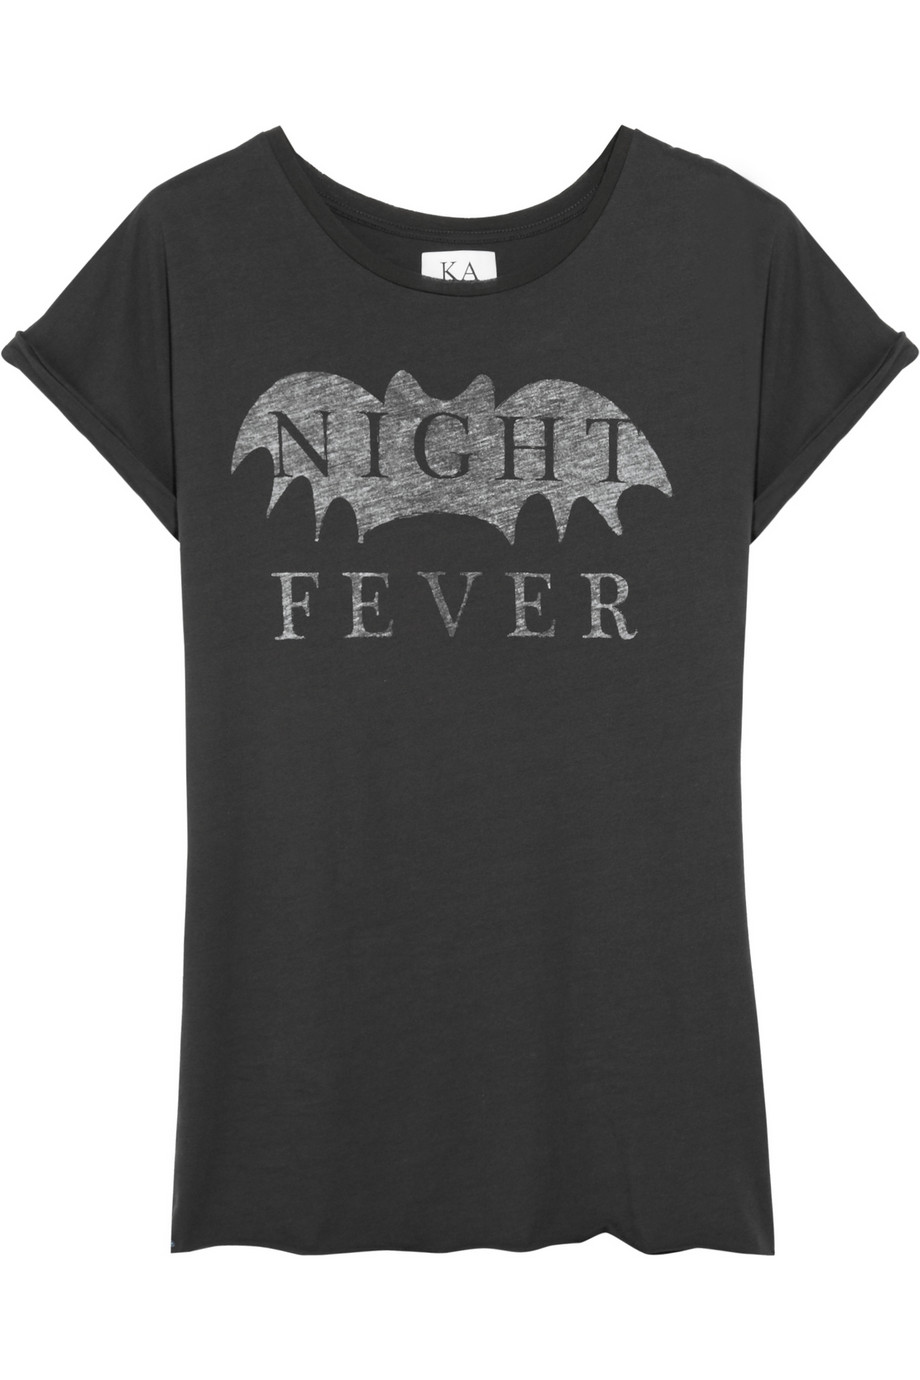 Night Fever cotton and modal-blend T-shirt | THE OUTNET